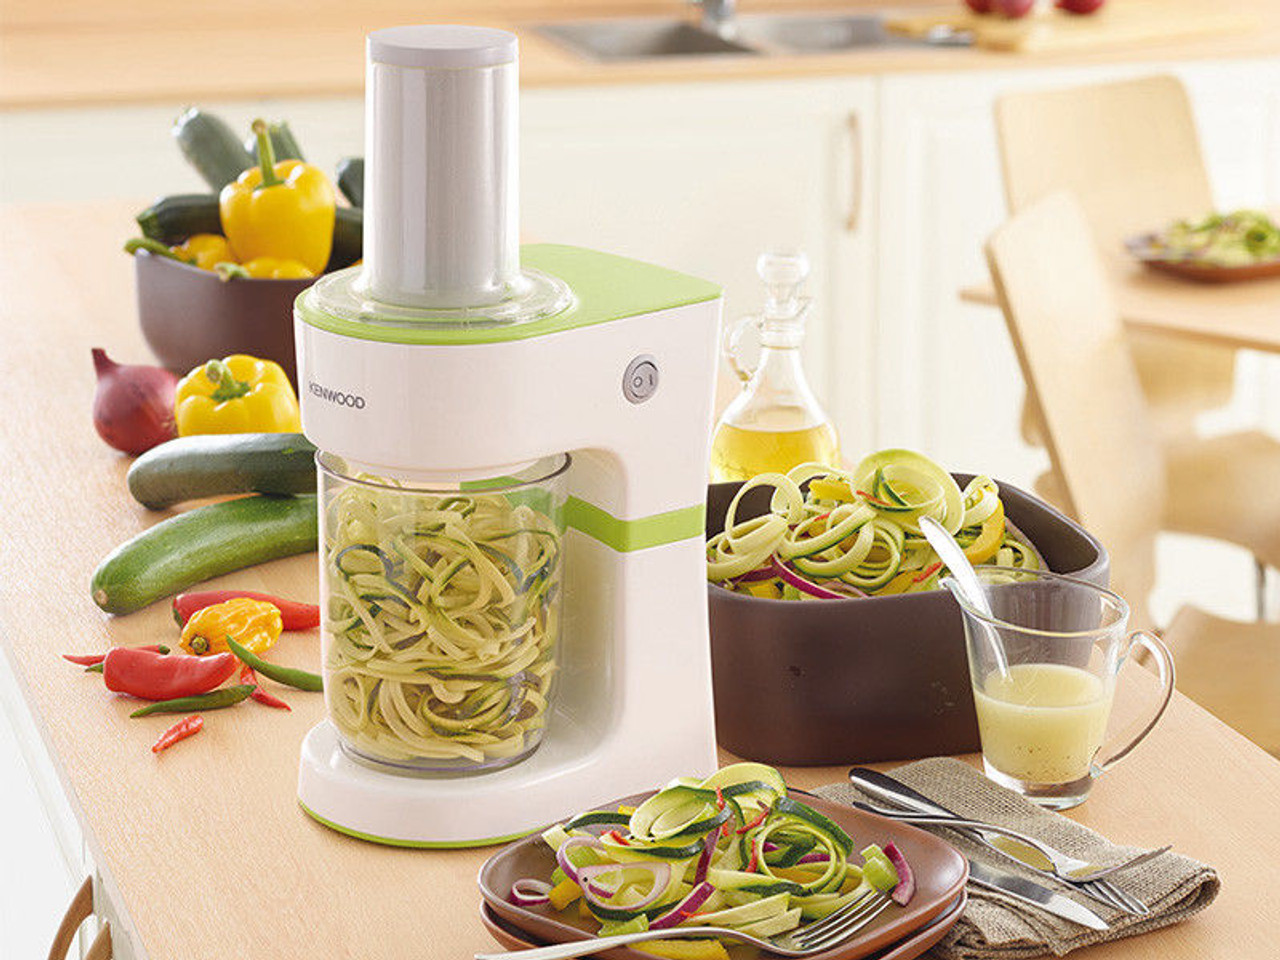 Kenwood FGP204WG Vegetable Spiralizer - Stainless Steel Blade - RRP $129.00